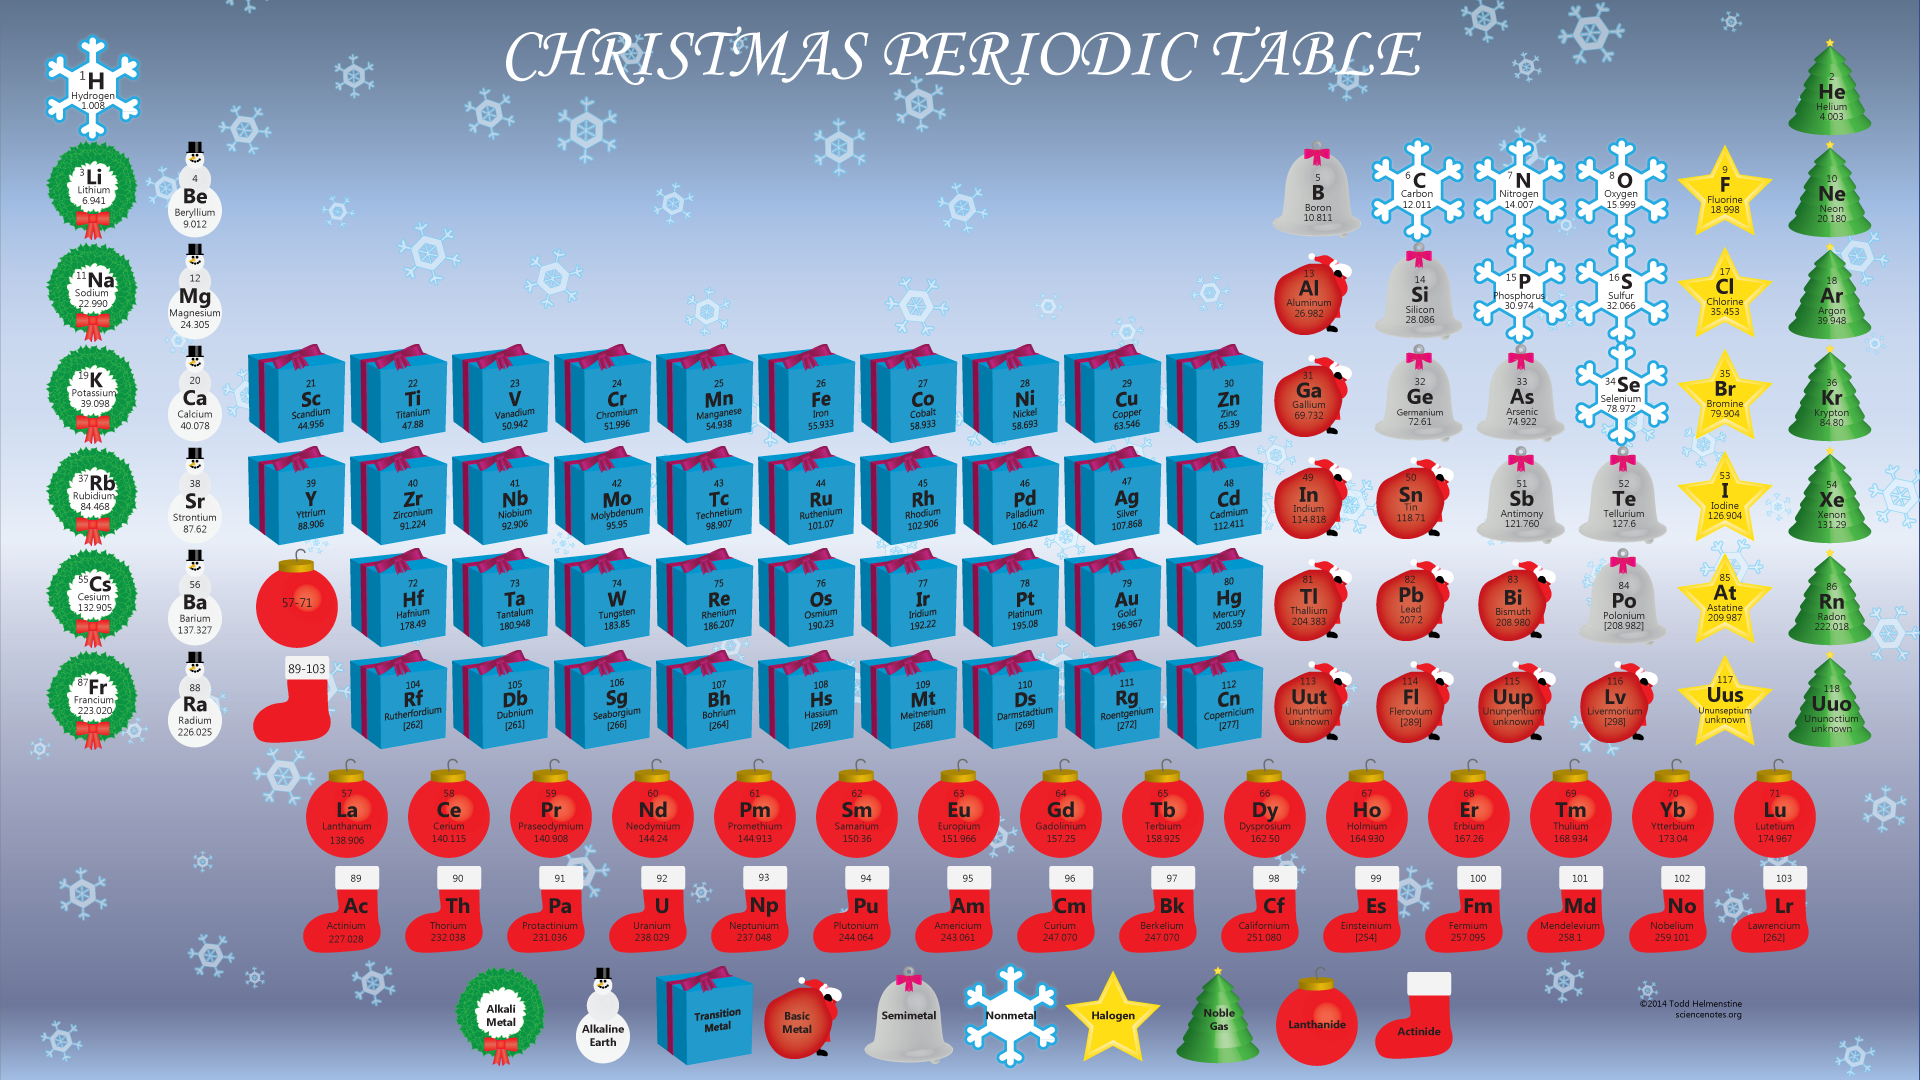 Christmas periodic table periodic table of the elements christmas periodic table urtaz Choice Image